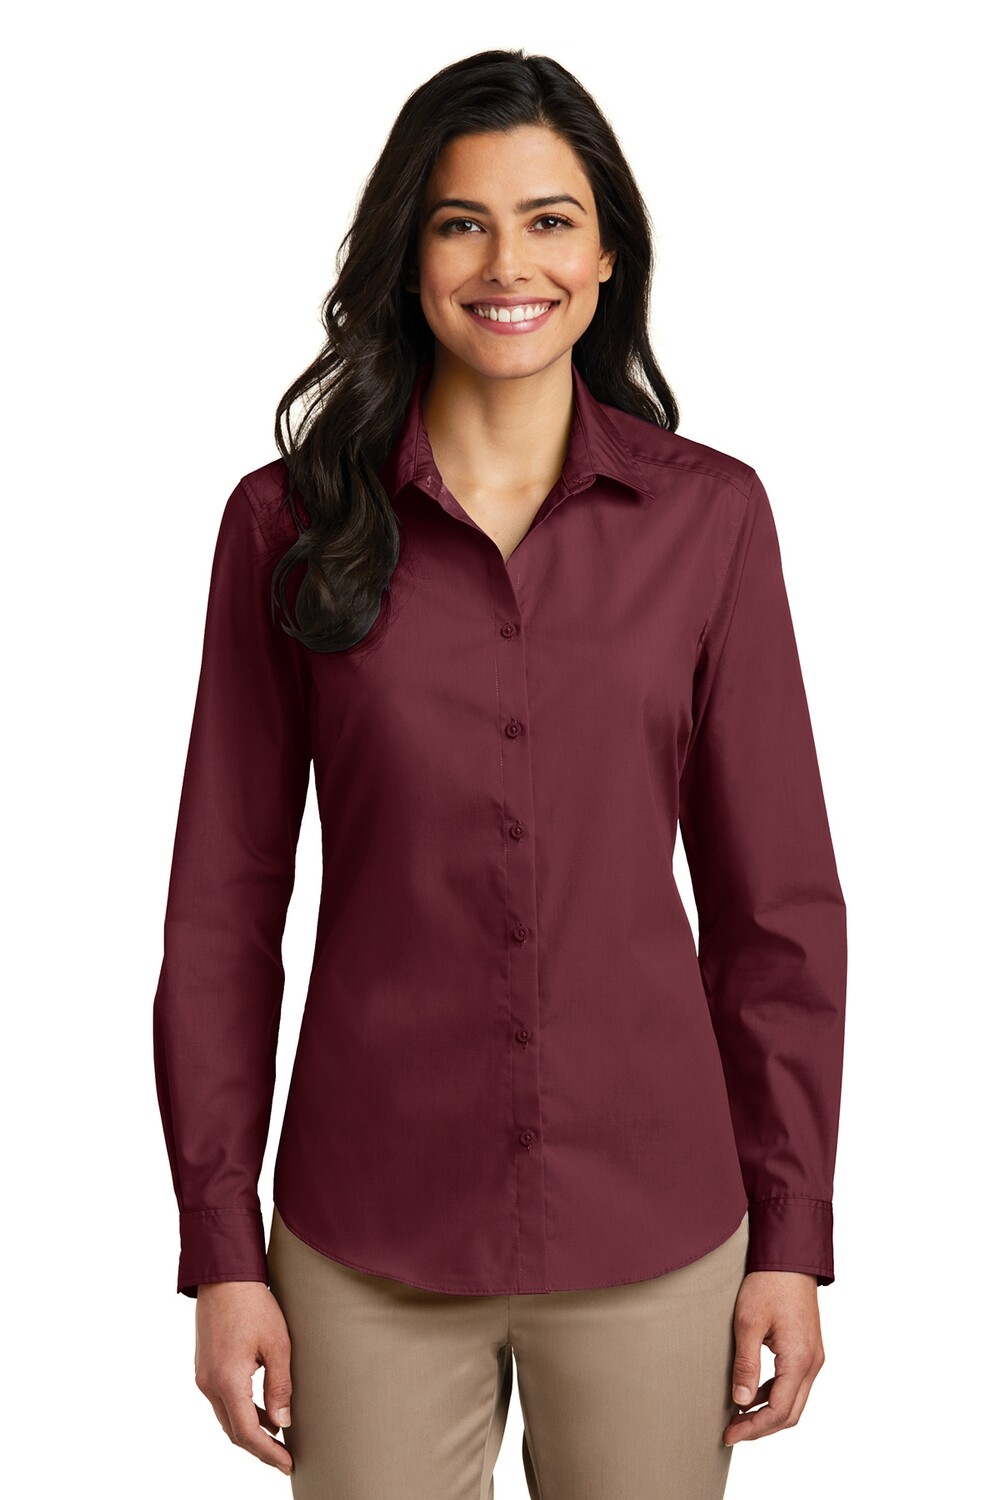 Ladies Port Authority Long Sleeve Poplin Shirt